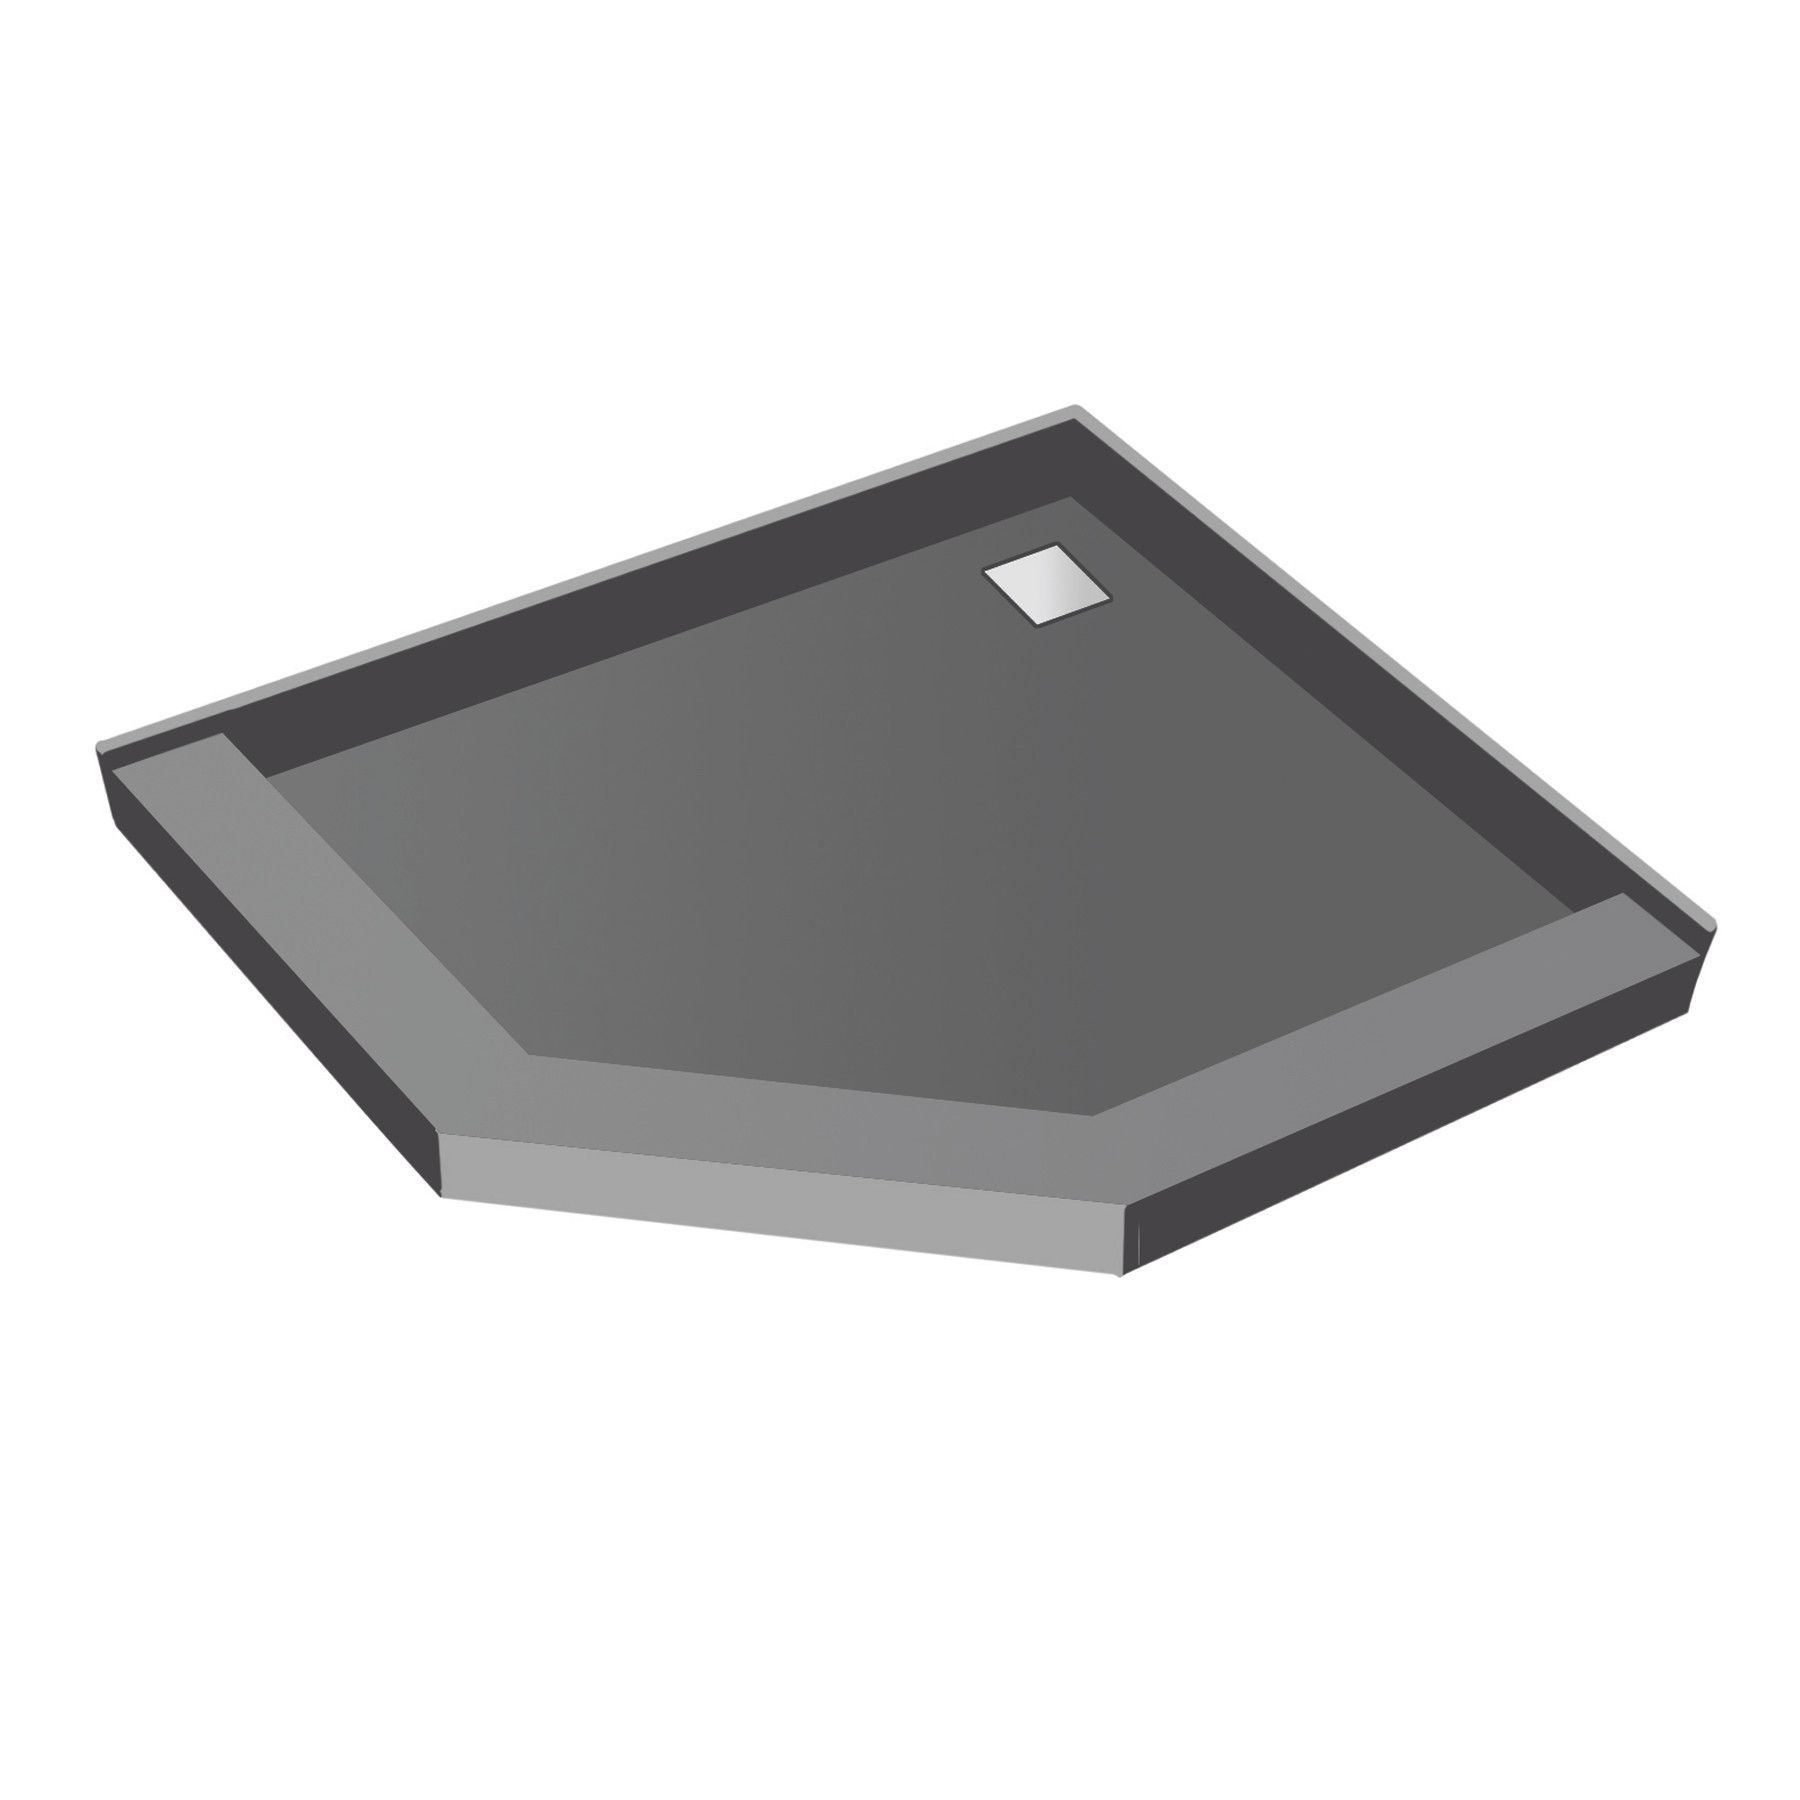 50 X 50 Neo Angle Triple Threshold Shower Base With Drain Top